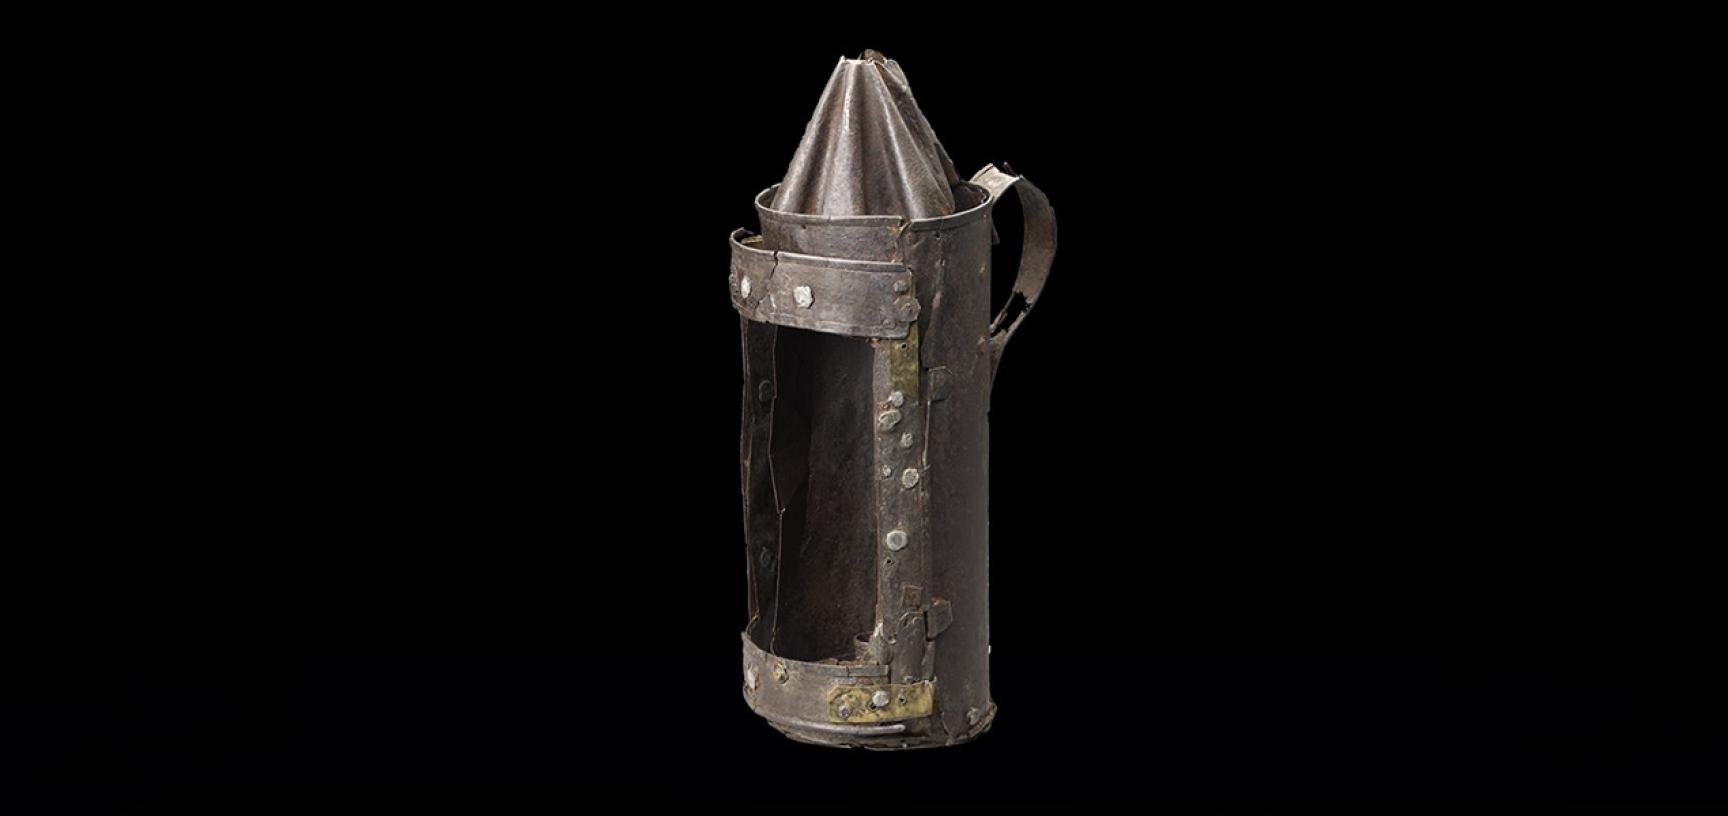 Guy Fawkes' lantern – The Ashmolean Story Gallery - Press Images